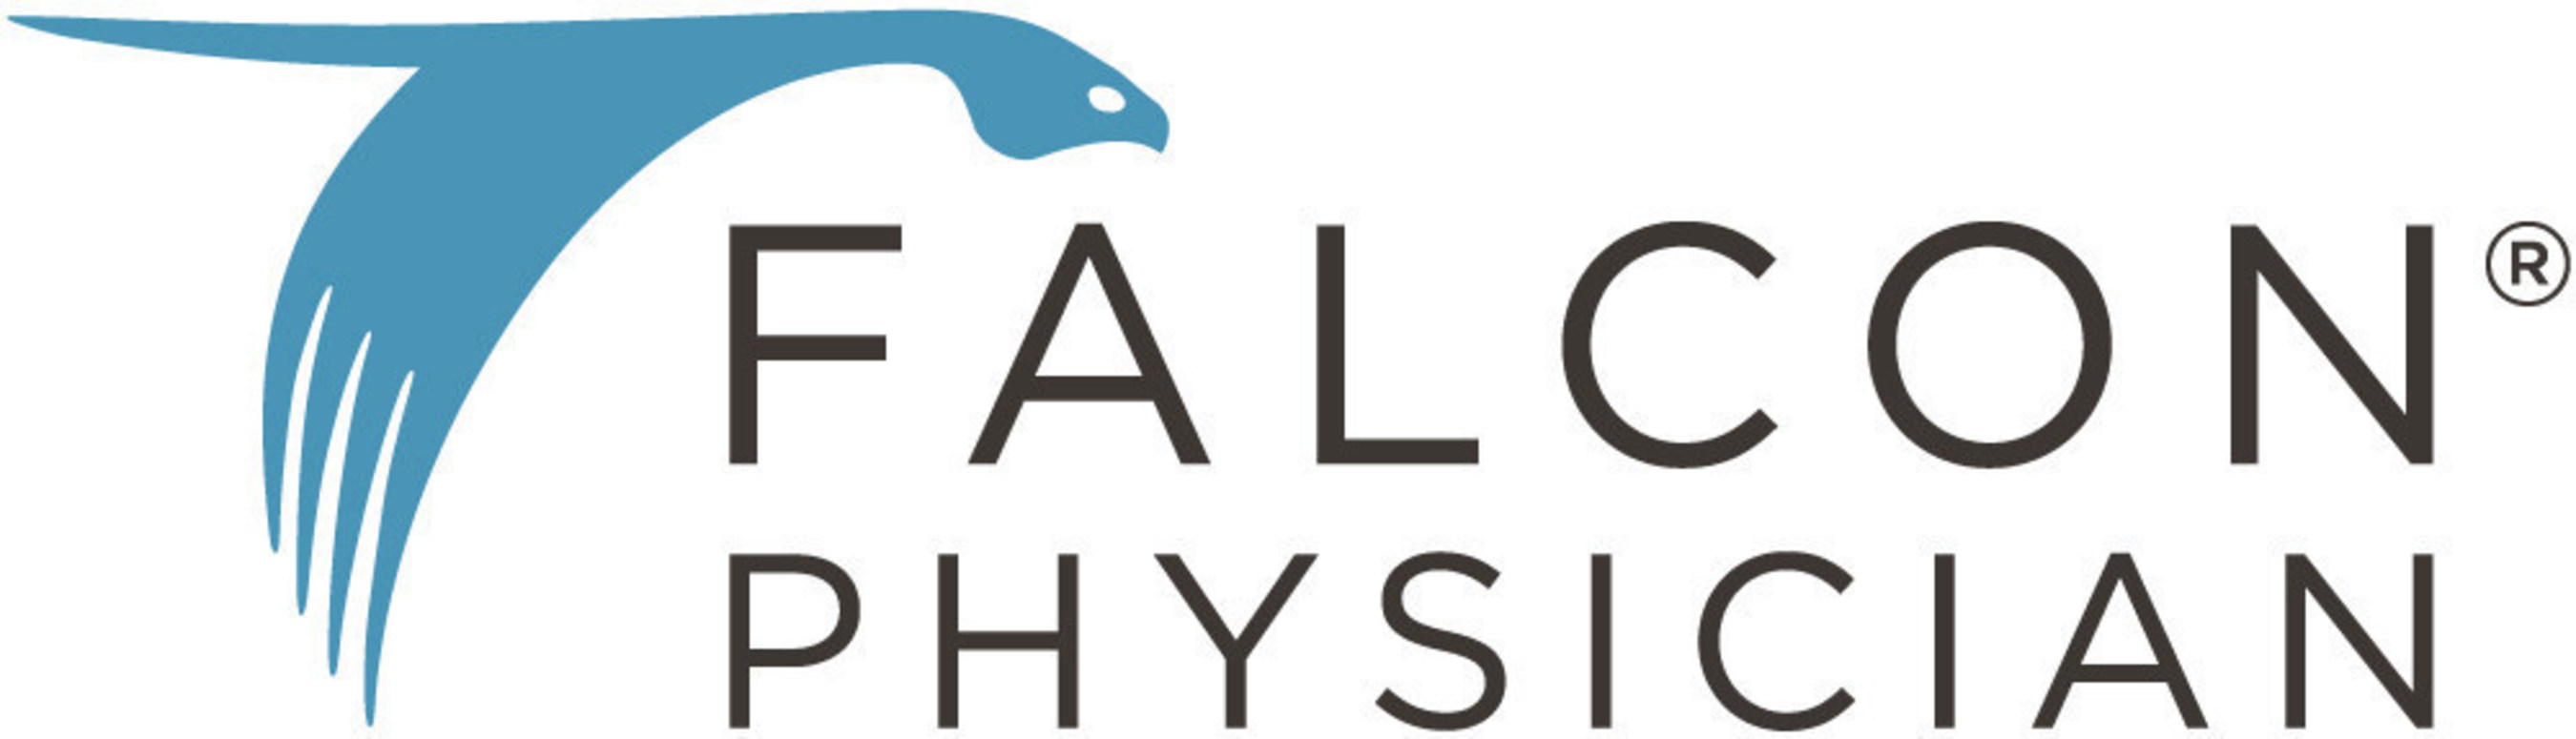 Falcon Physician Launches Nephrology Charting App